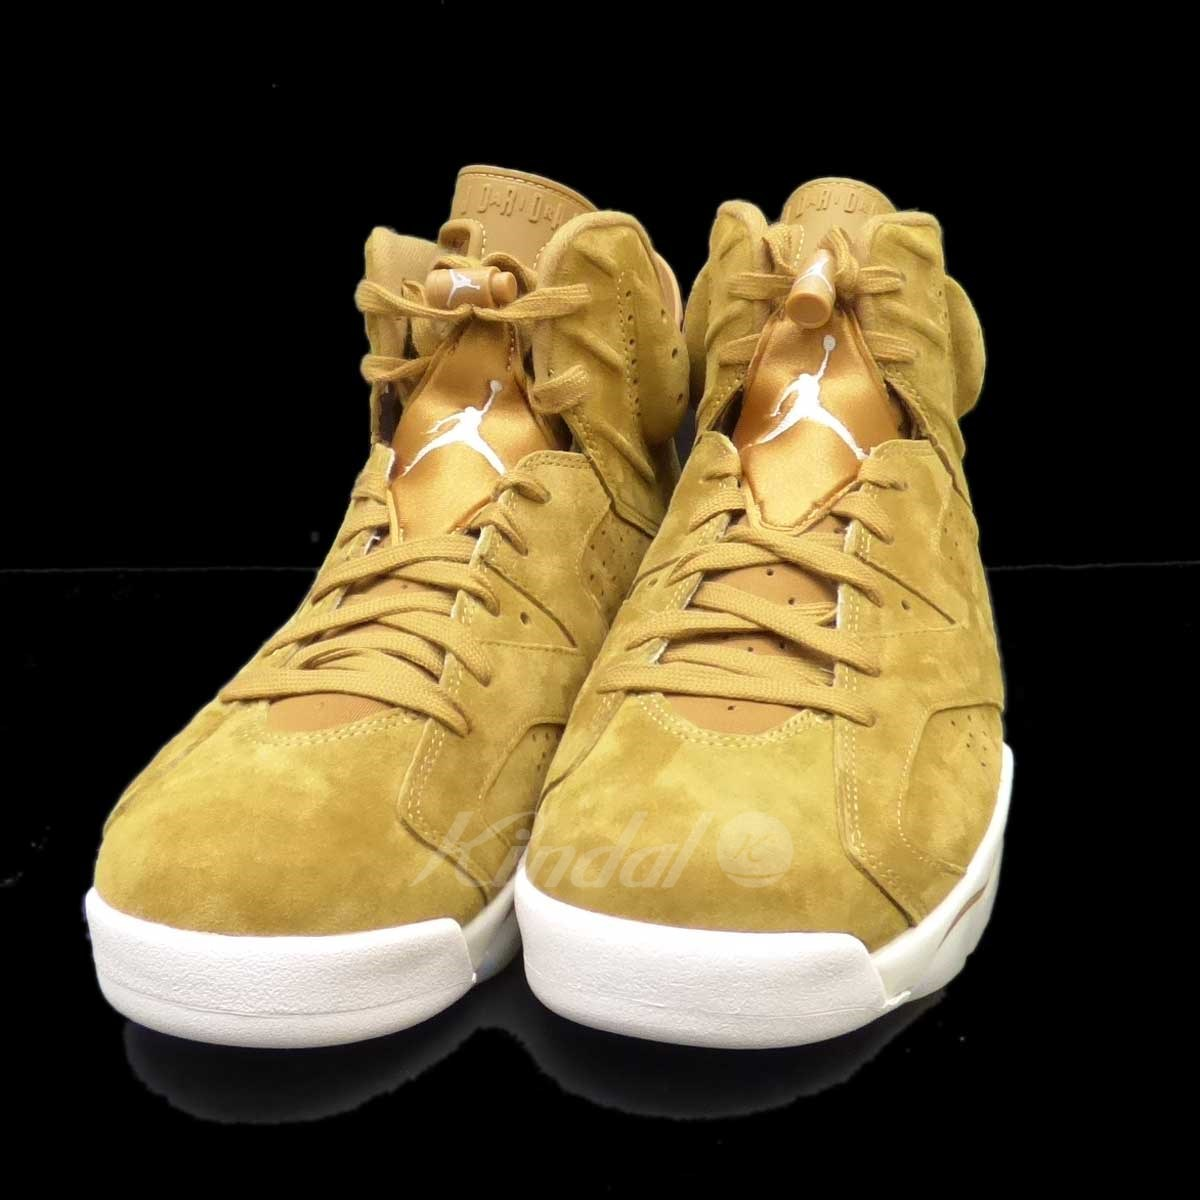 【中古】NIKE AIR JORODAN 6 RETRO GOLDEN HARVEST WHEAT 【送料無料】 【032686】 【KIND1327】